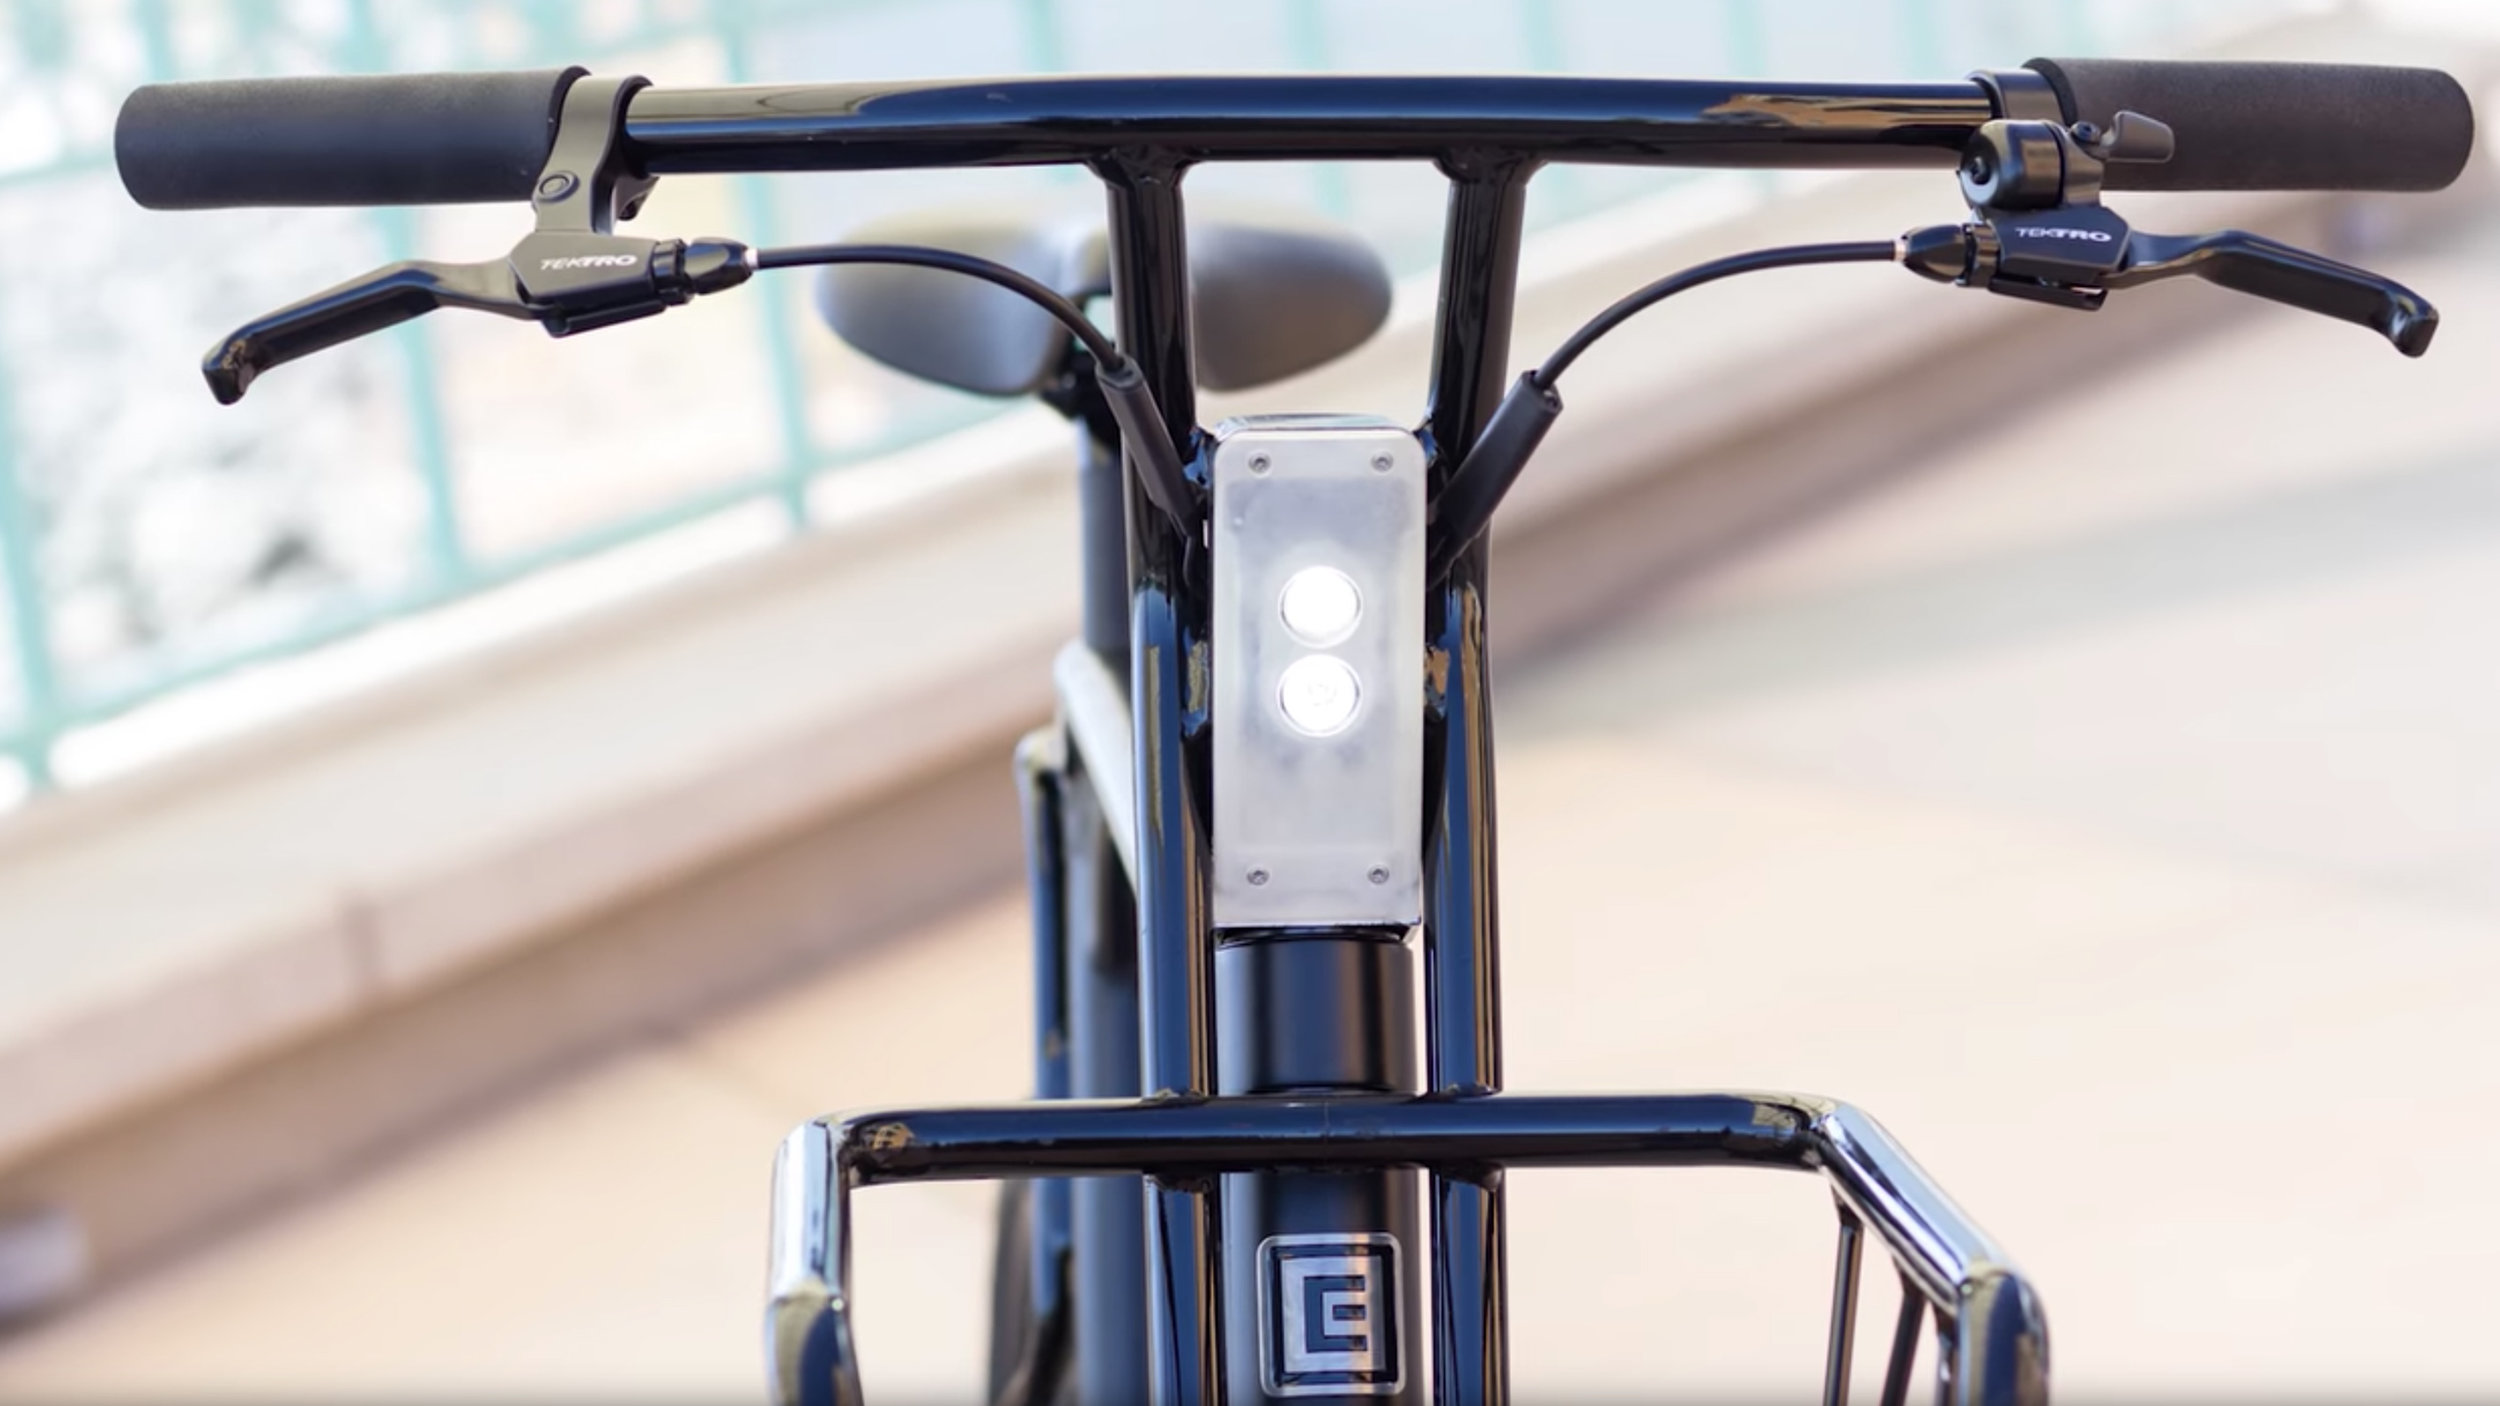 electrified-reviews-pure-cycles-volta-single-speed-electric-bike-review-handlebars-headlight.jpg